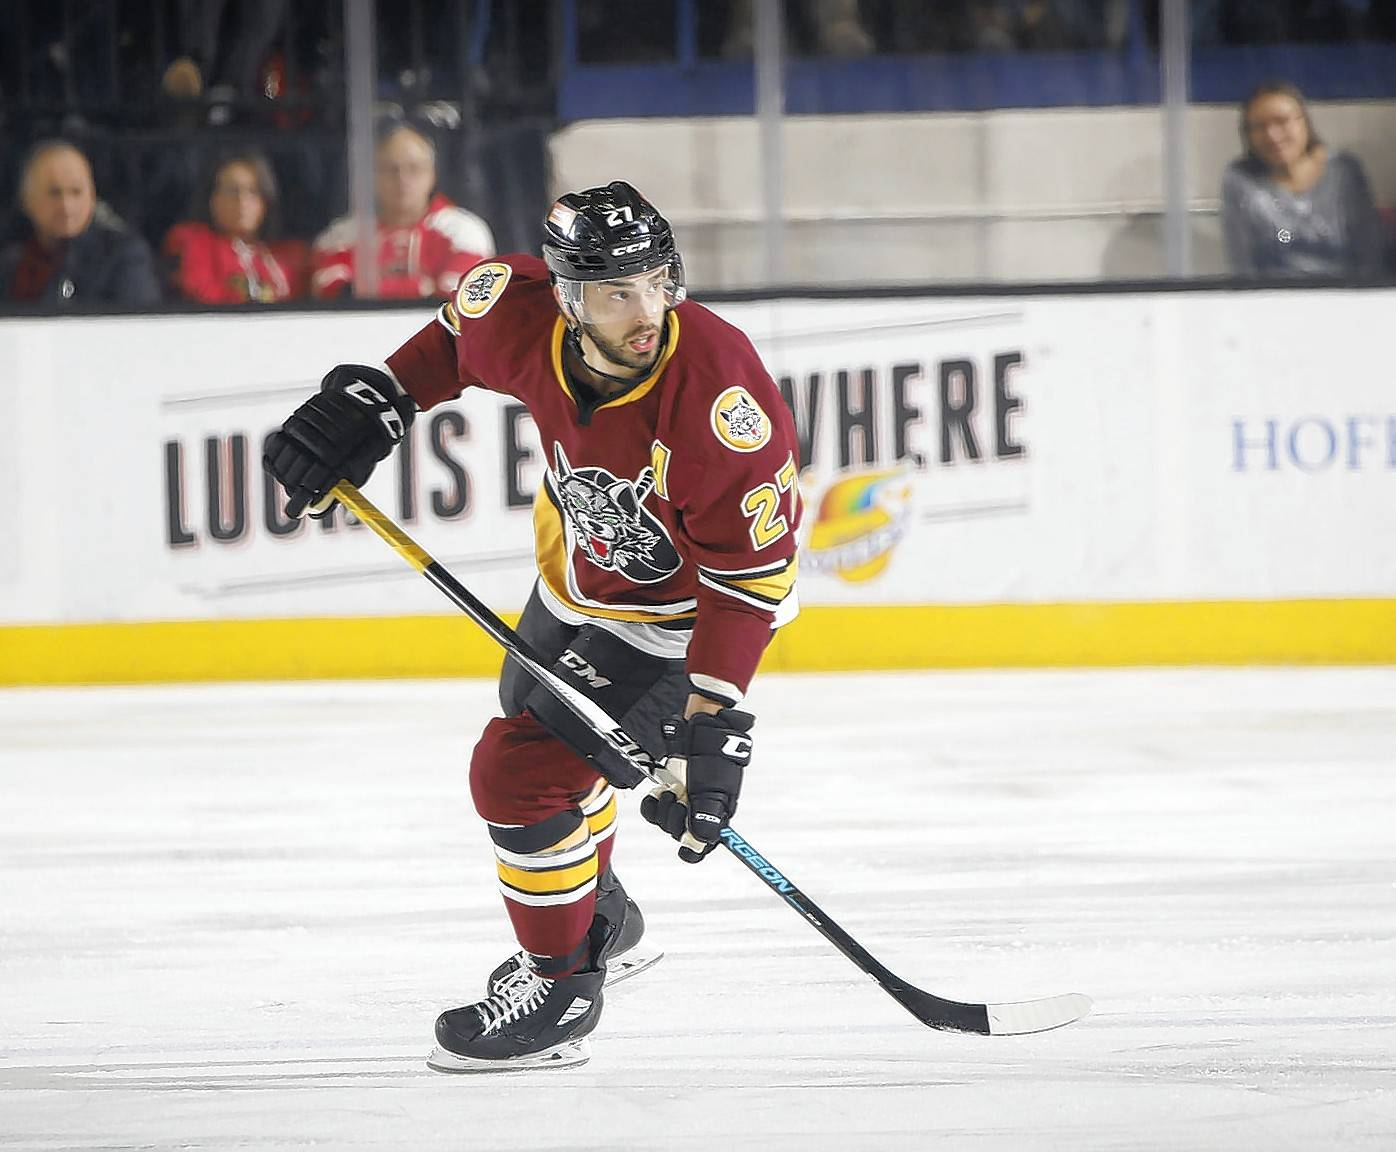 Chicago Wolves forward Brandon Pirri hopes his success in the AHL translates to another chance in the NHL.